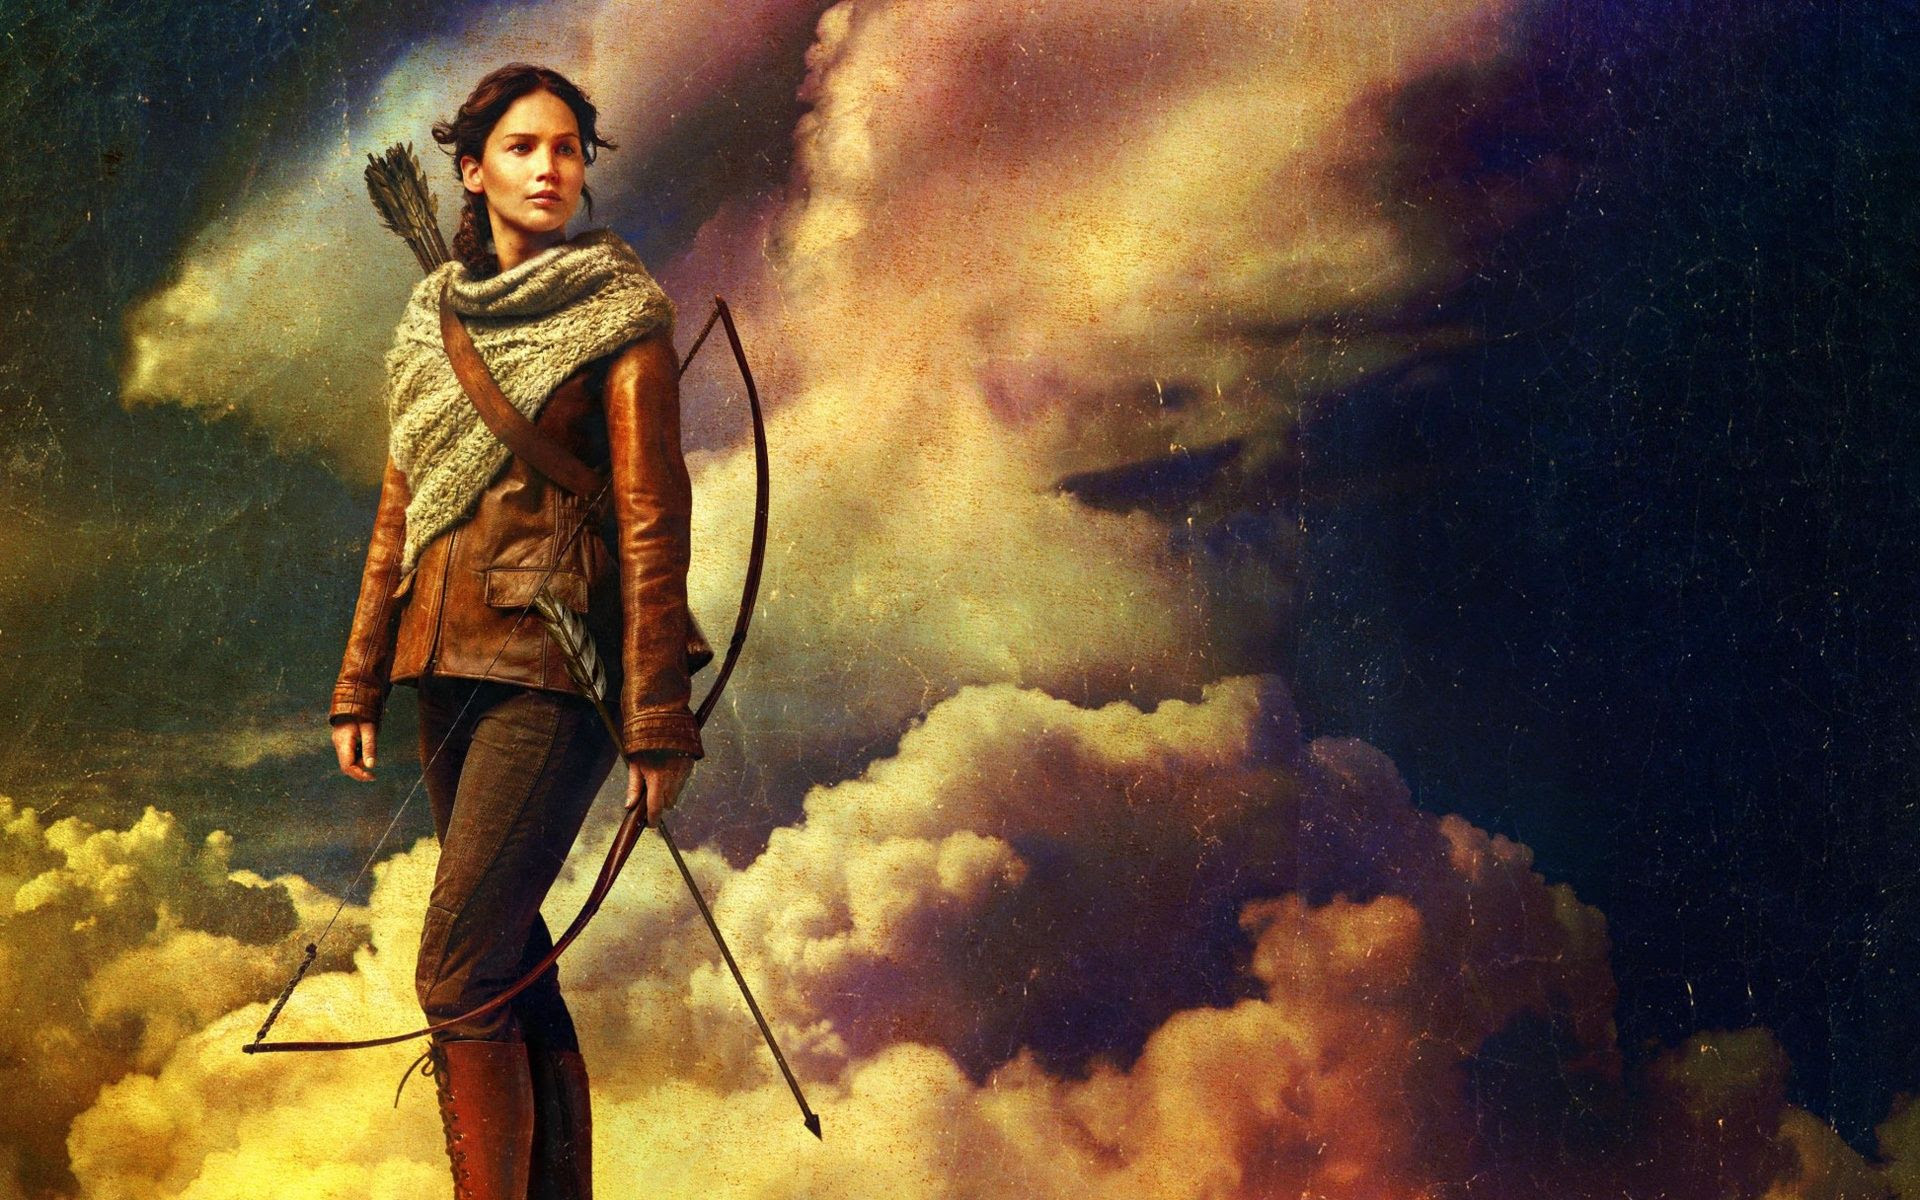 http://acollectivemind.files.wordpress.com/2013/11/katniss-everdeen-costume-catching-fire-2013-poster.jpg